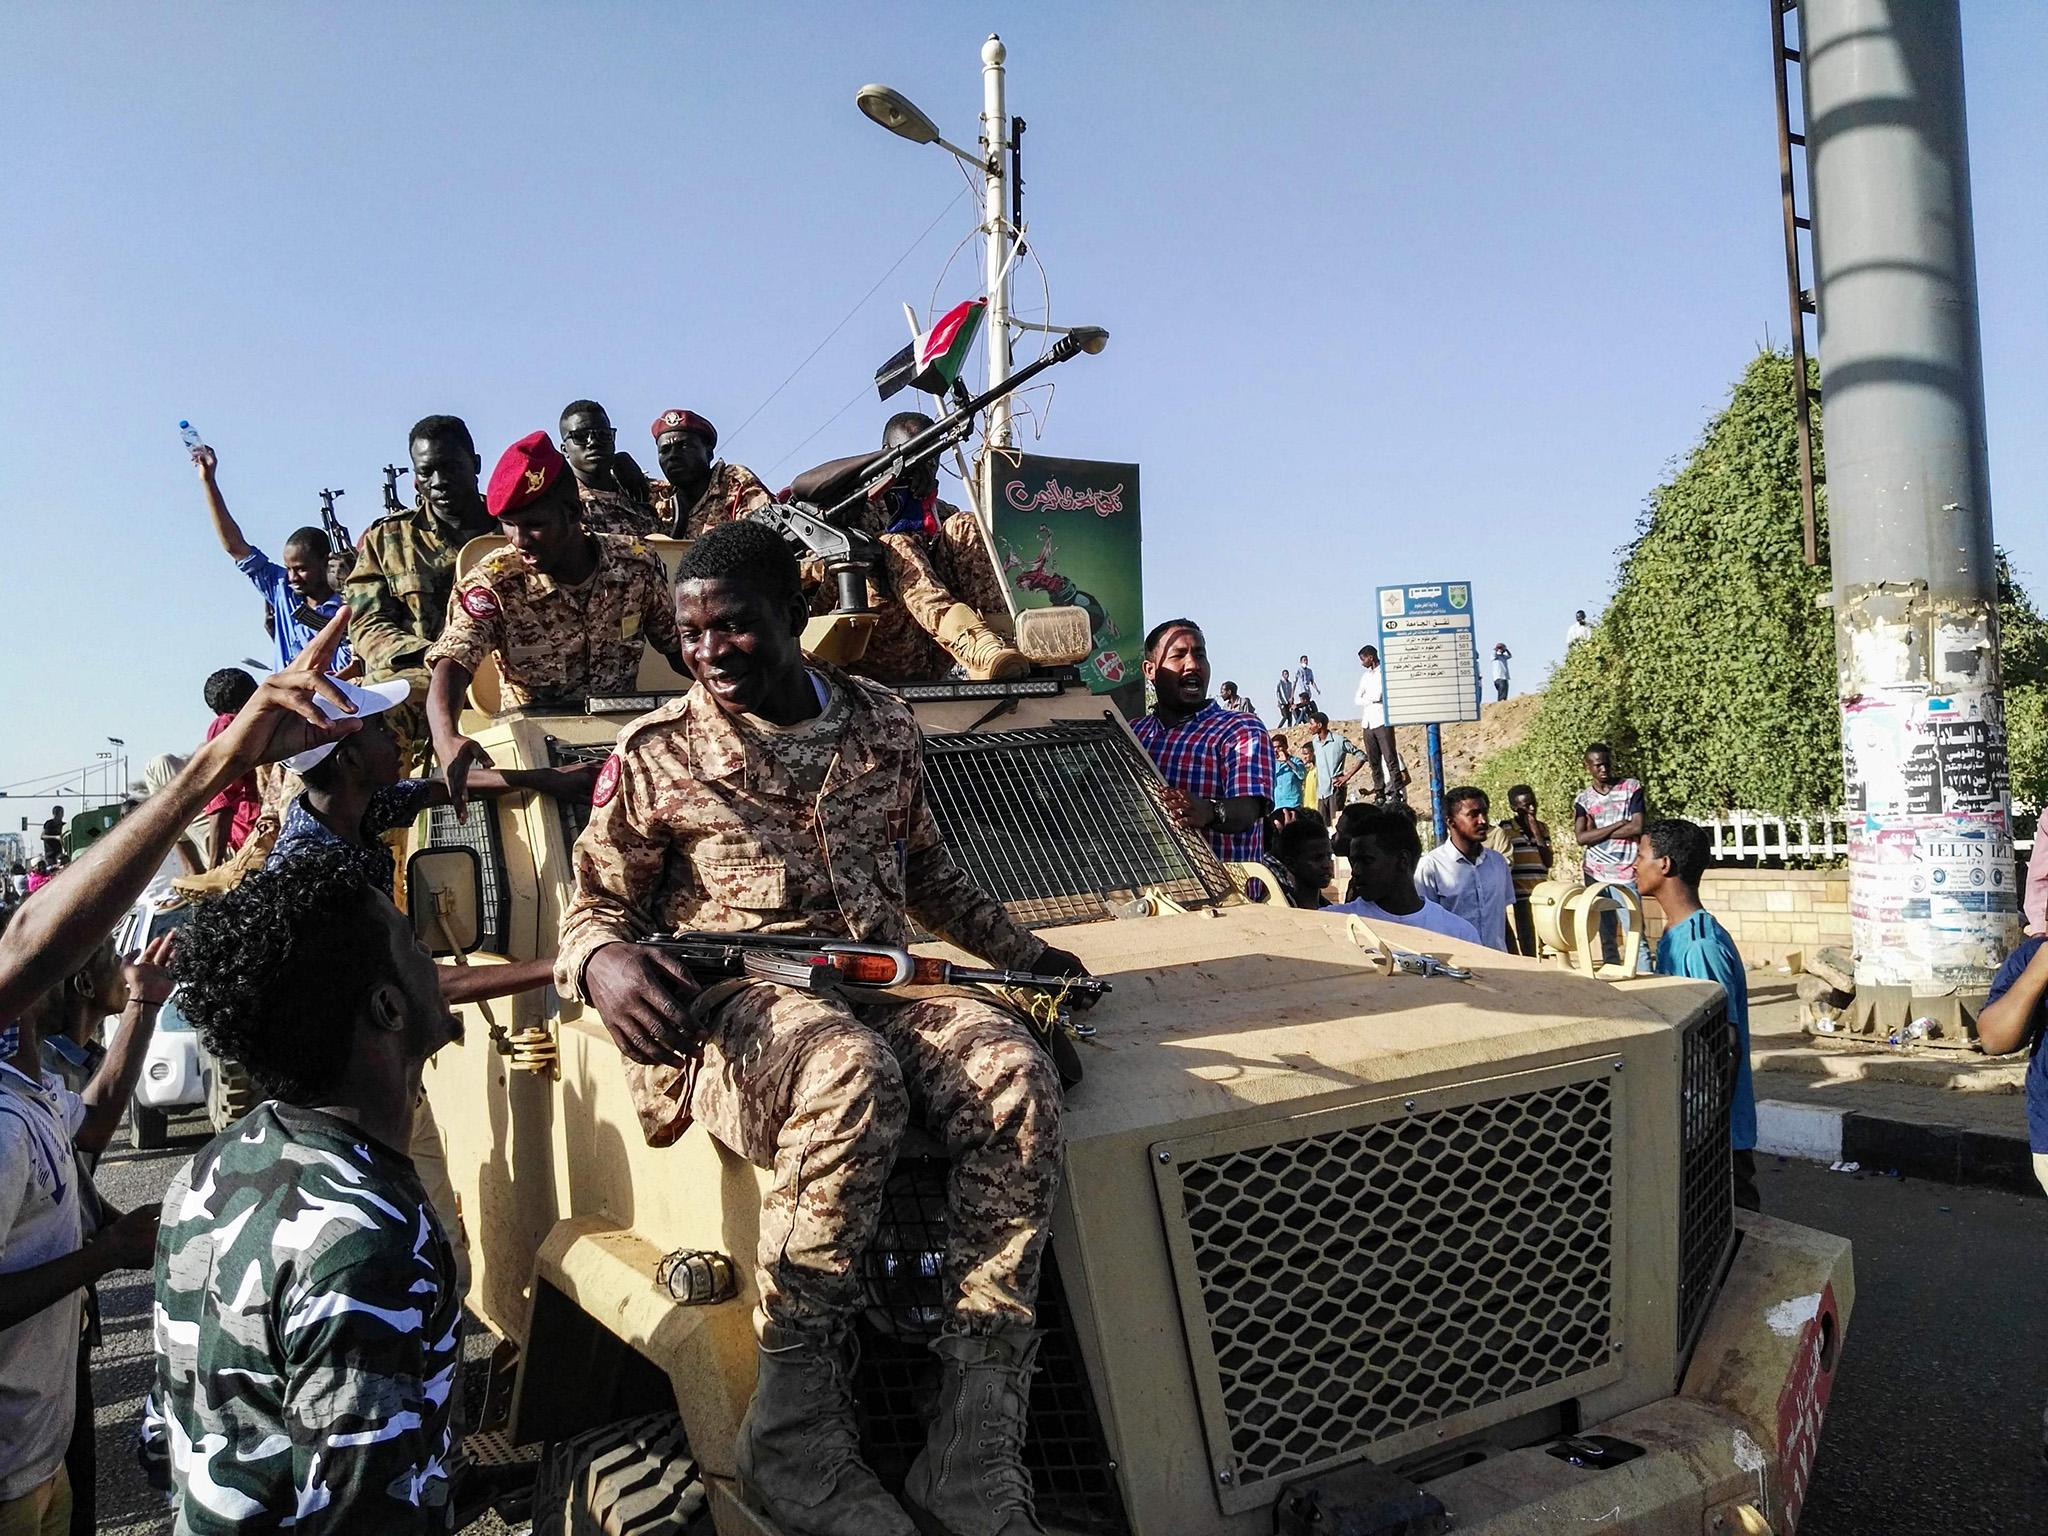 Sudan: Security forces 'hiding corpses' of protesters dumped in the